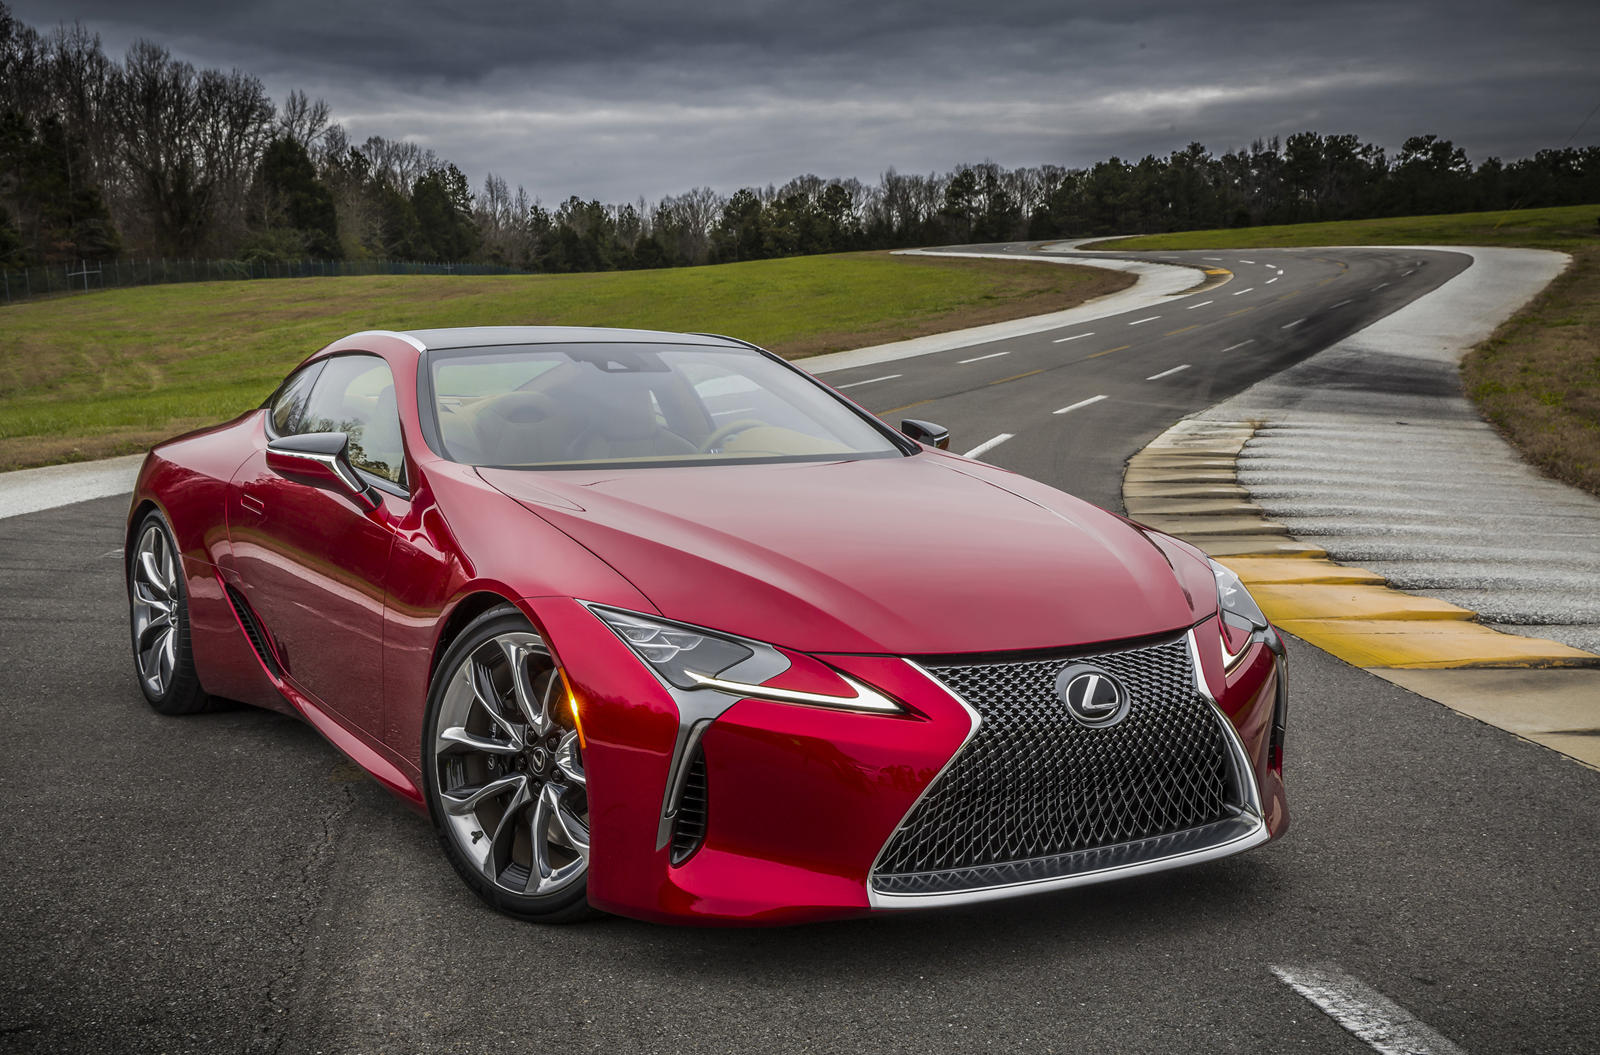 Best Full-Size Coupes On The Market